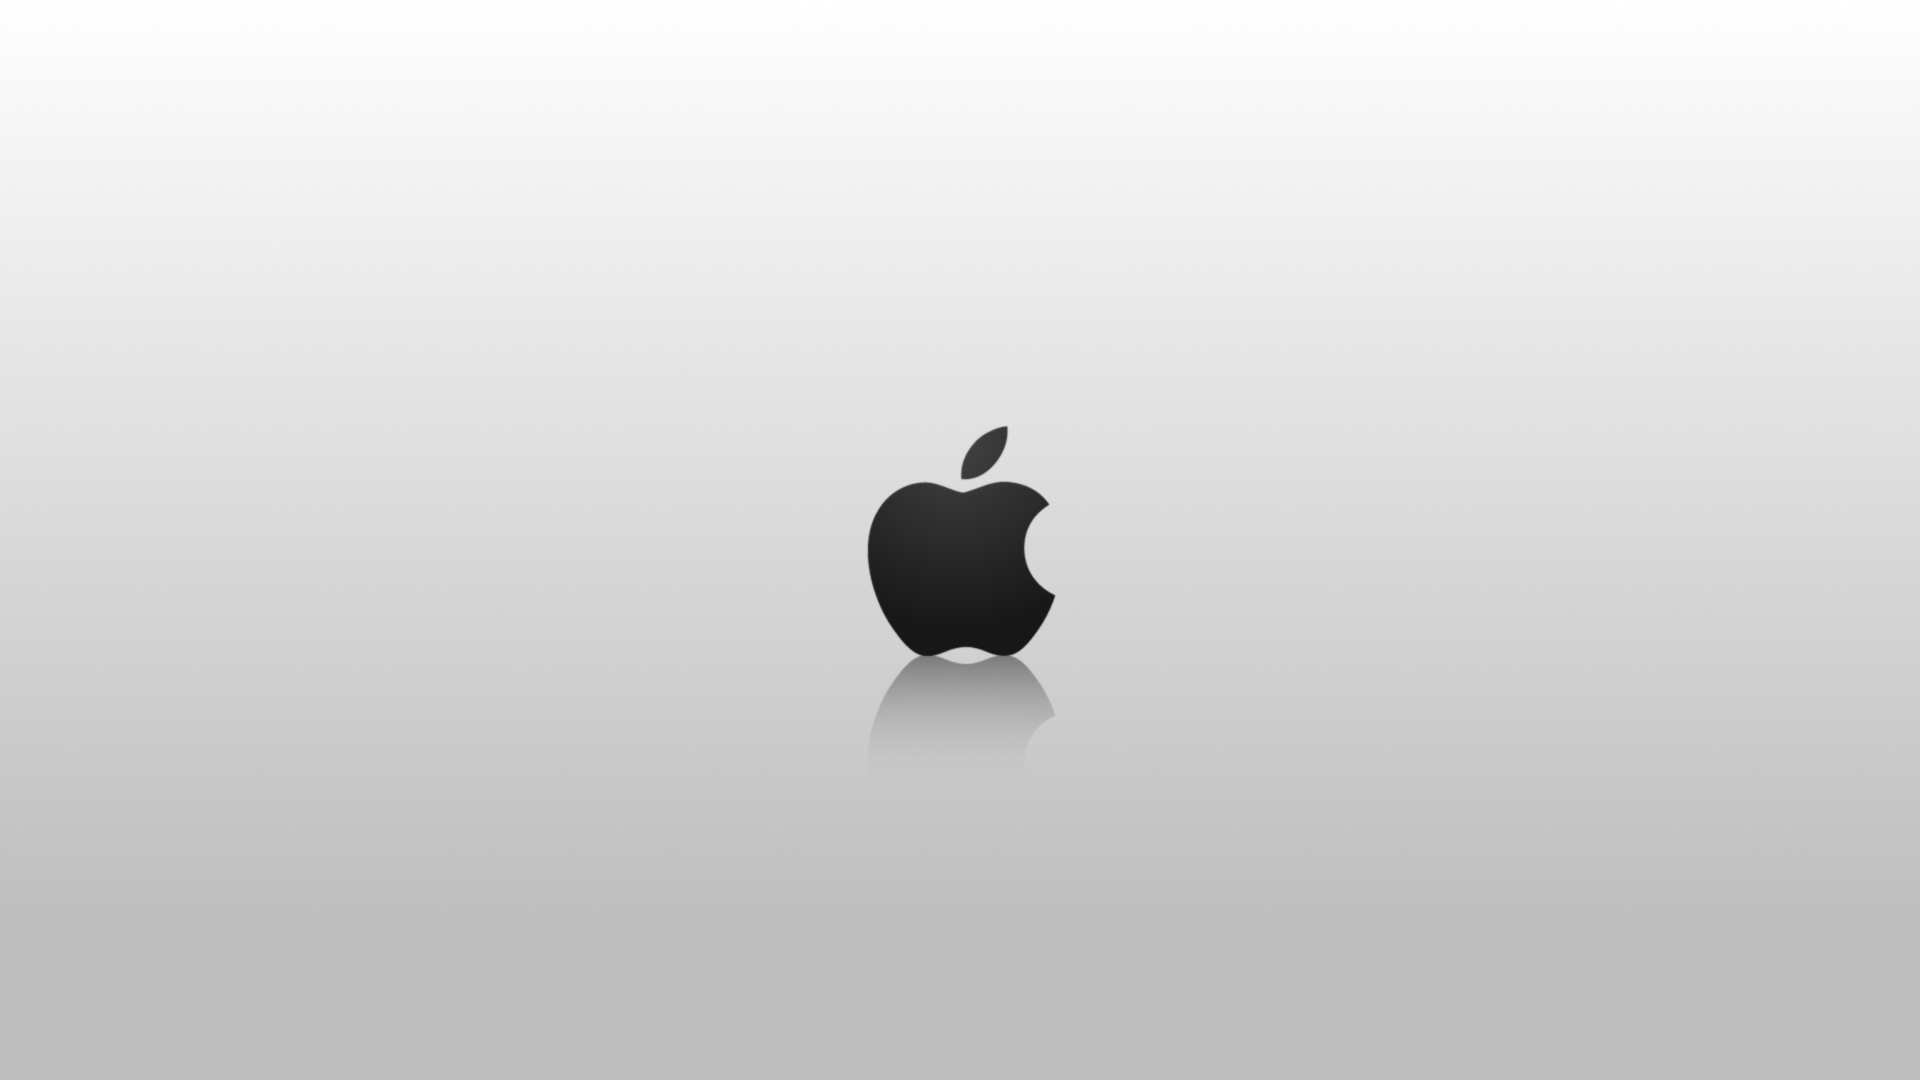 Simple Apple Wallpaper